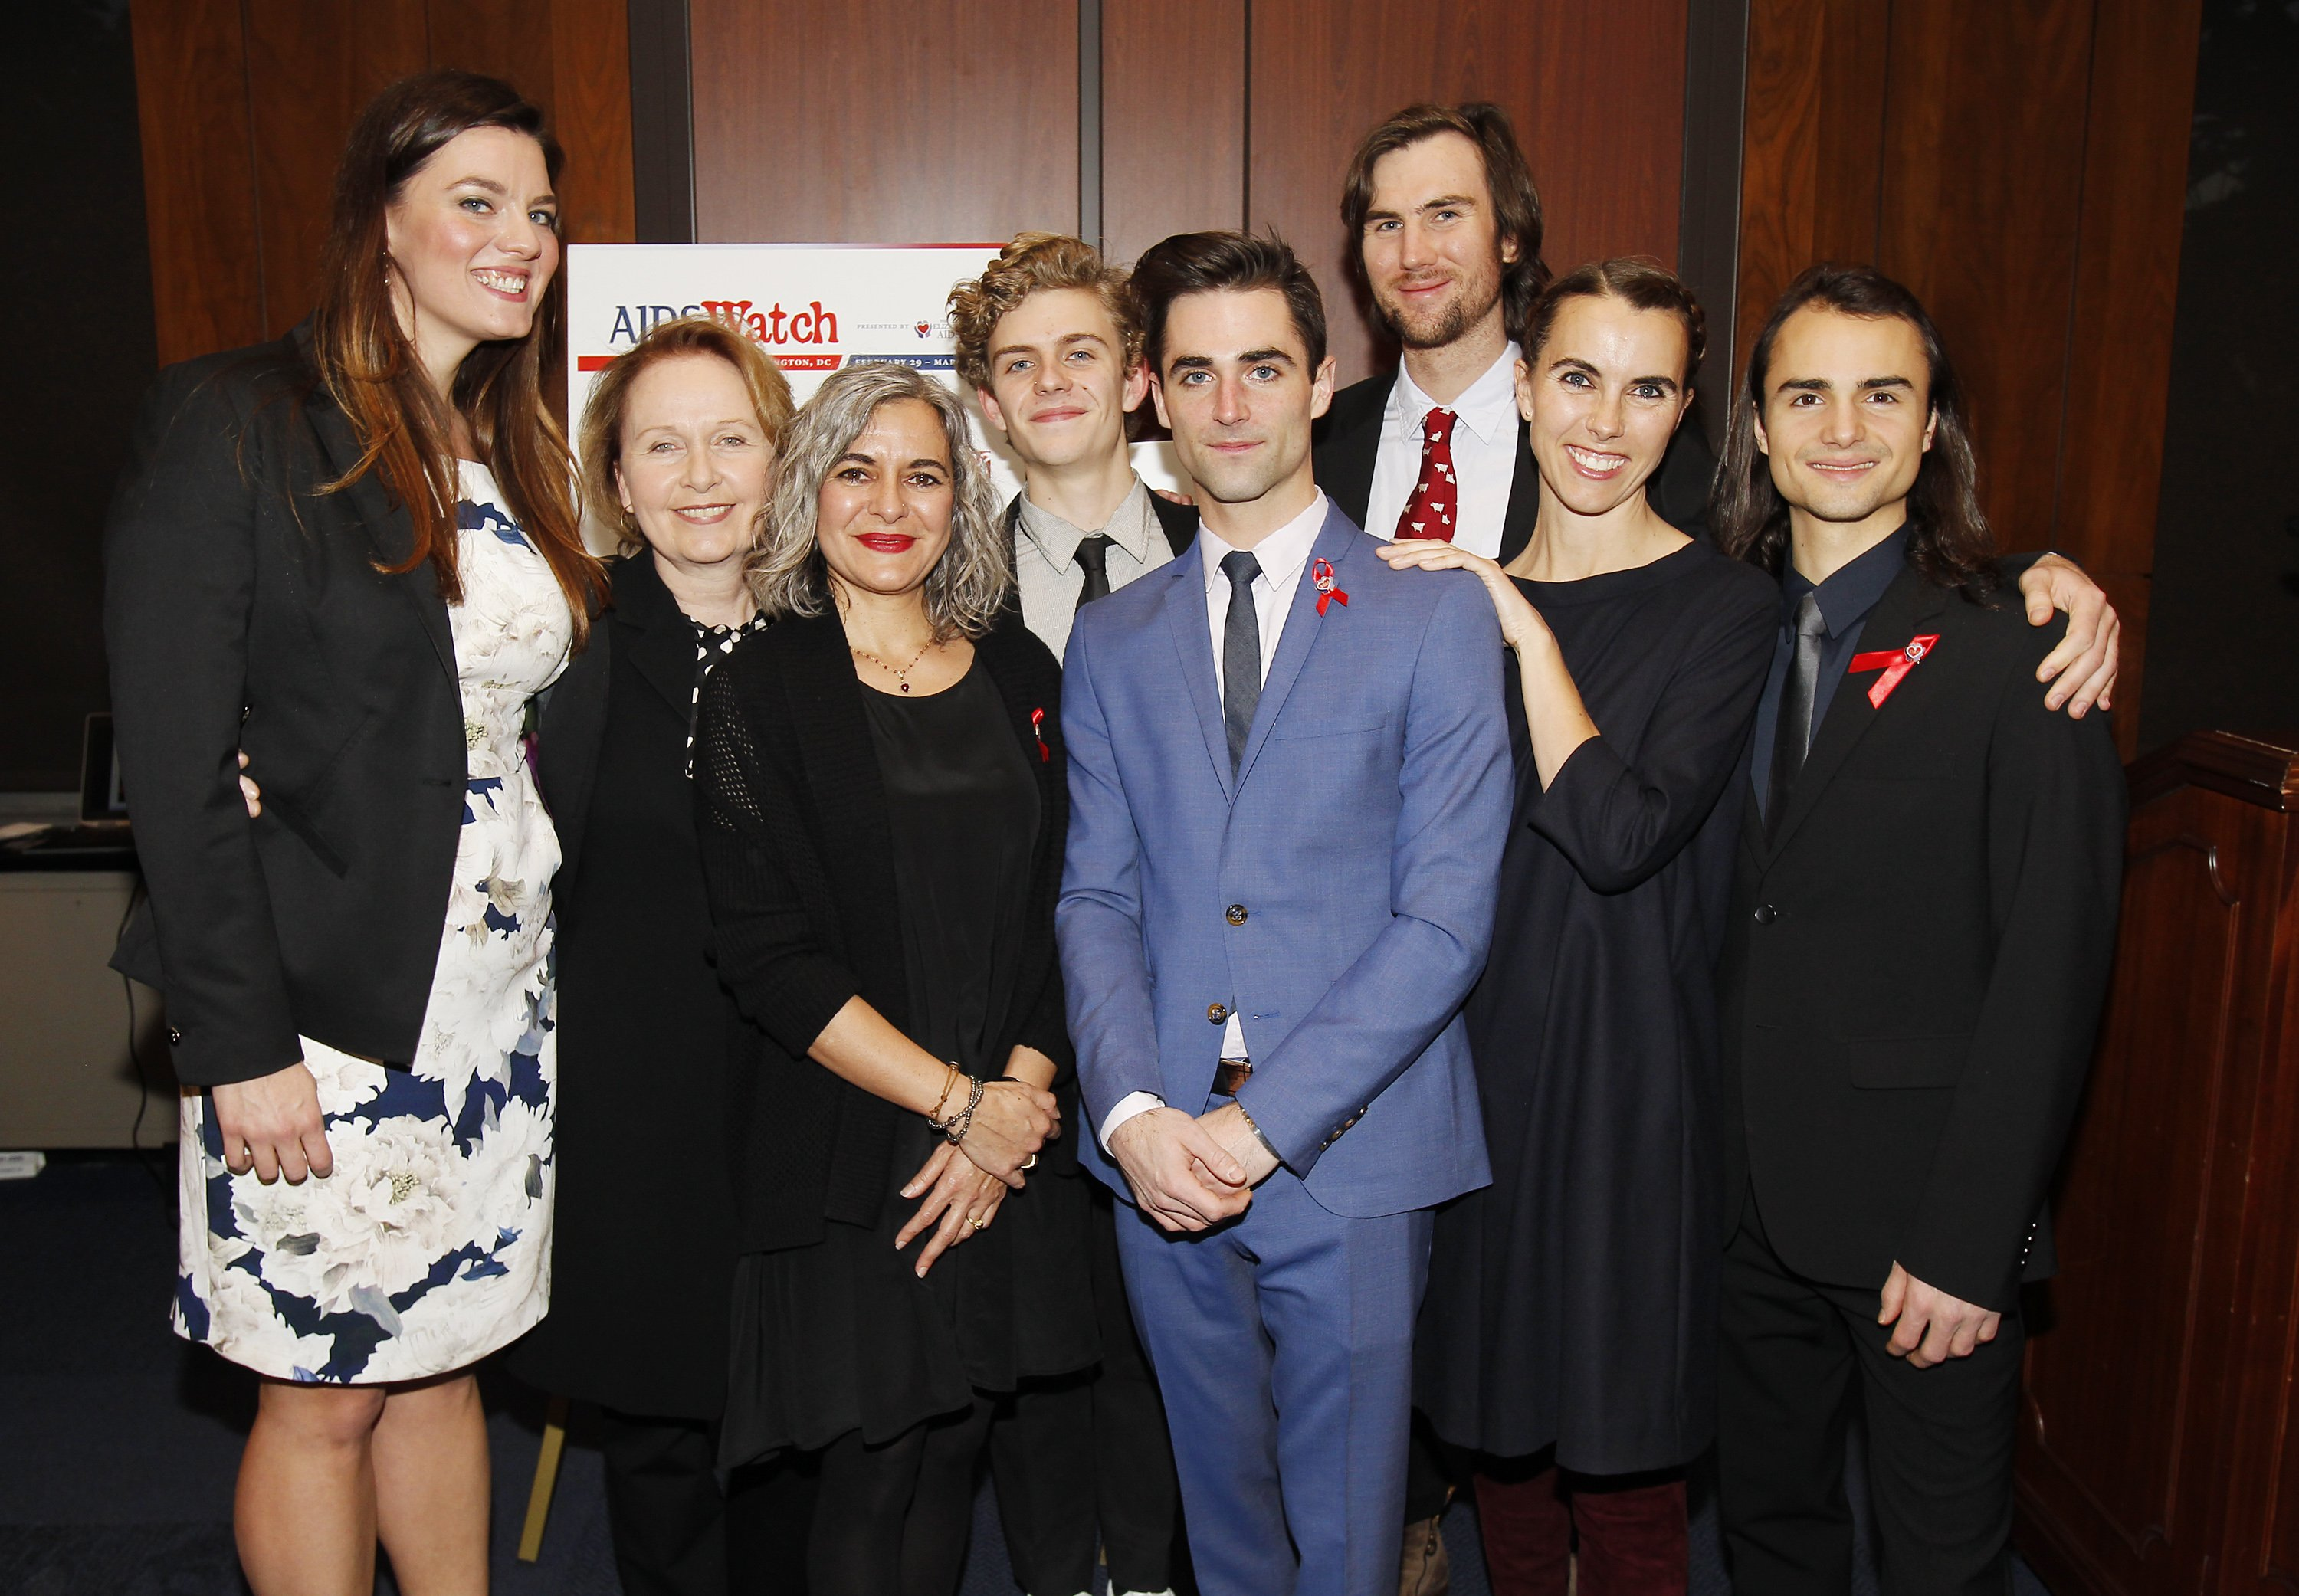 Eliza Carson, Kate Burton, Laela Wilding, Finn McMurray, Quinn Tivey, Tarquin Wilding, Naomi Wilding, and Rhys Tivey attend the AIDSWatch 2016 Positive Leadership Award Reception at the Rayburn House Office Building on February 29, 2016 | Photo: GettyImages